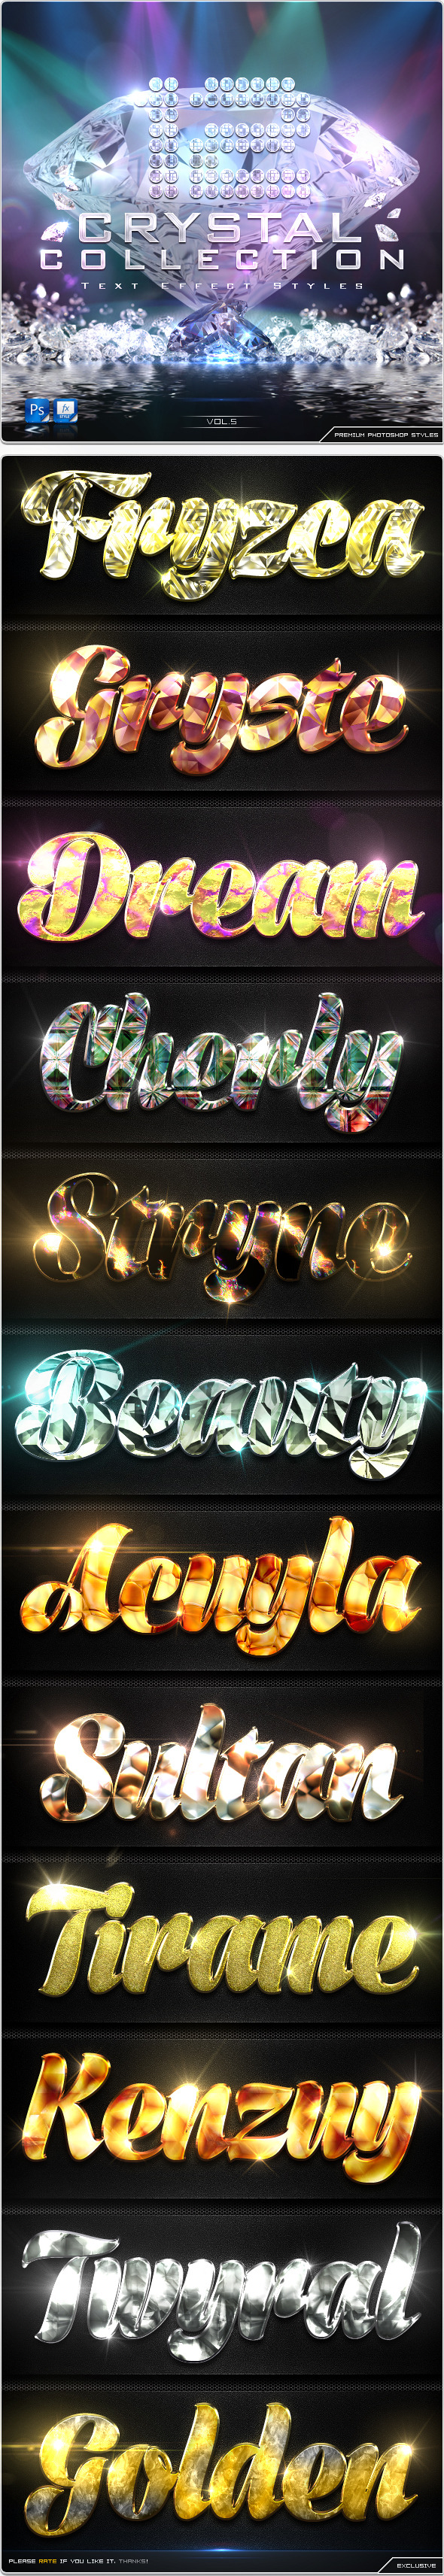 GraphicRiver 12 Crystal Collection Text Effect Styles Vol.5 8989720